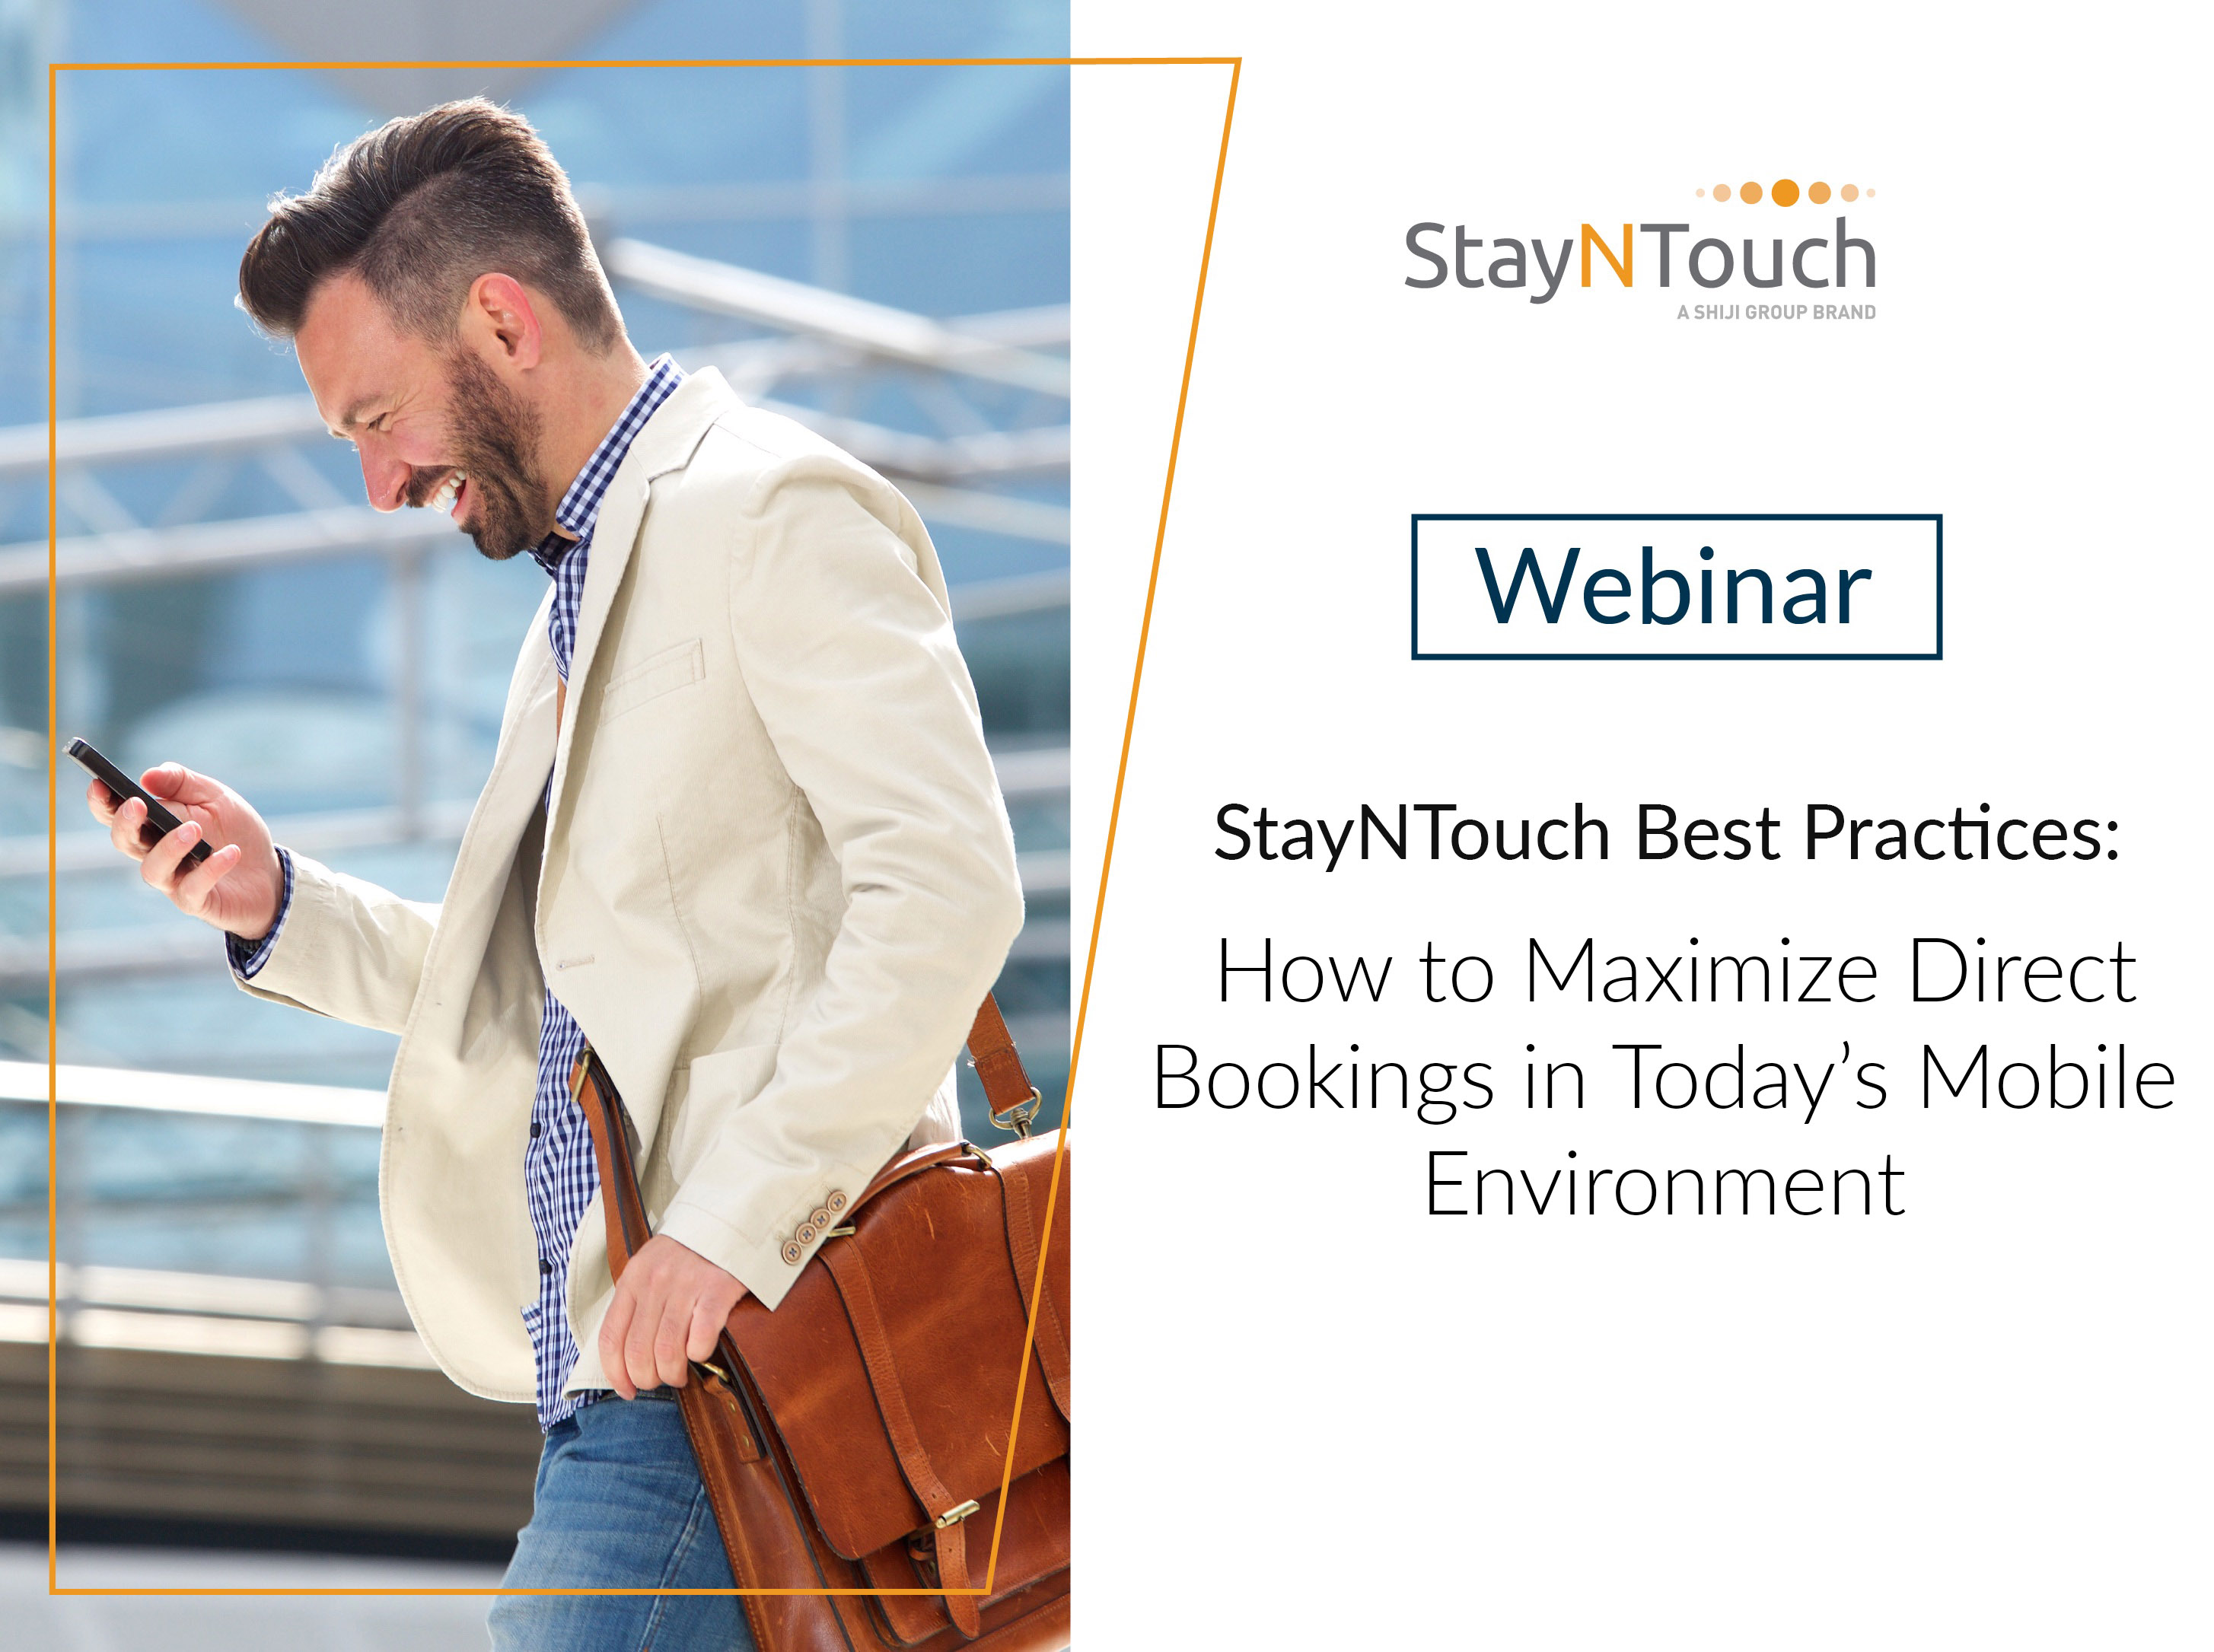 [Webinar] StayNTouch Best Practices: How to Maximize Direct Bookings in Today's Mobile Environment